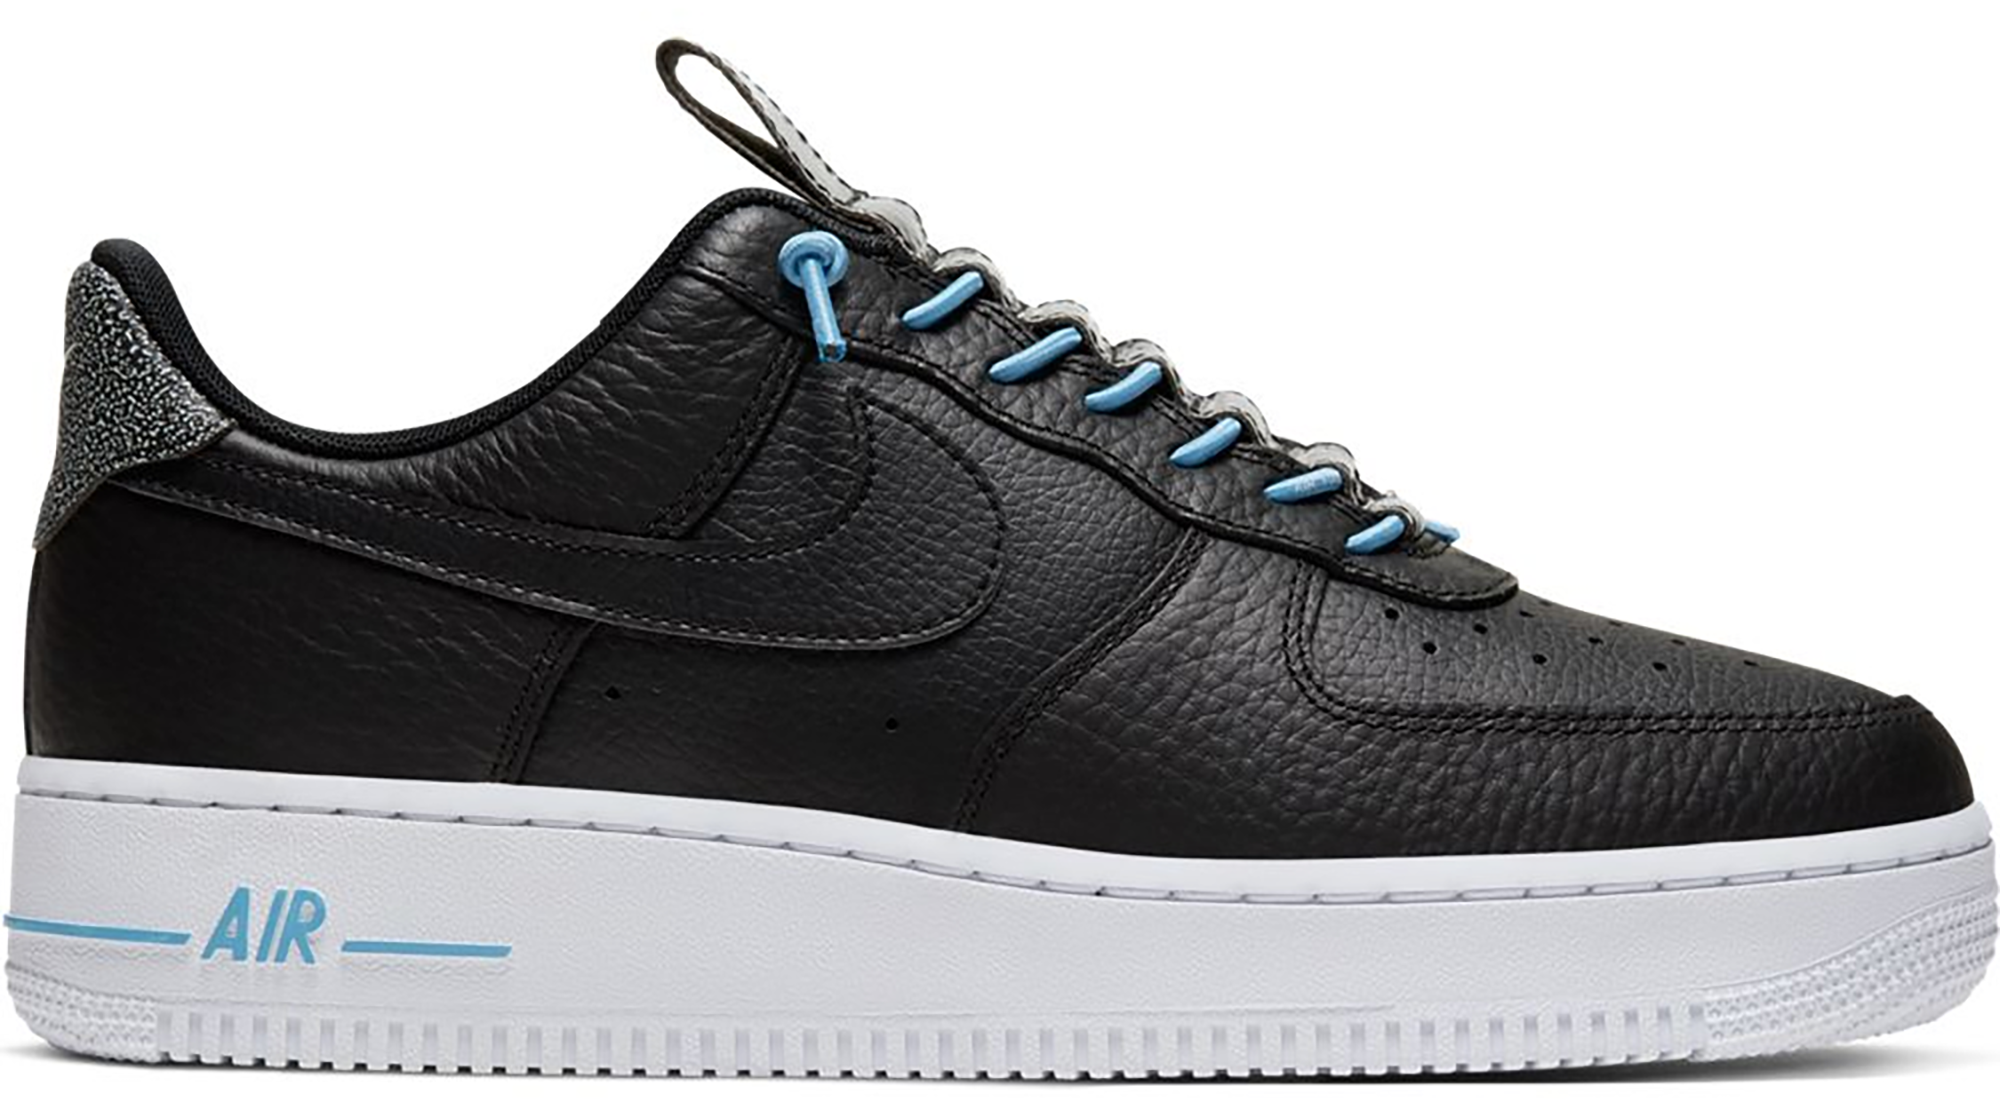 Nike Air Force 1 Low 07 Lux Black Light